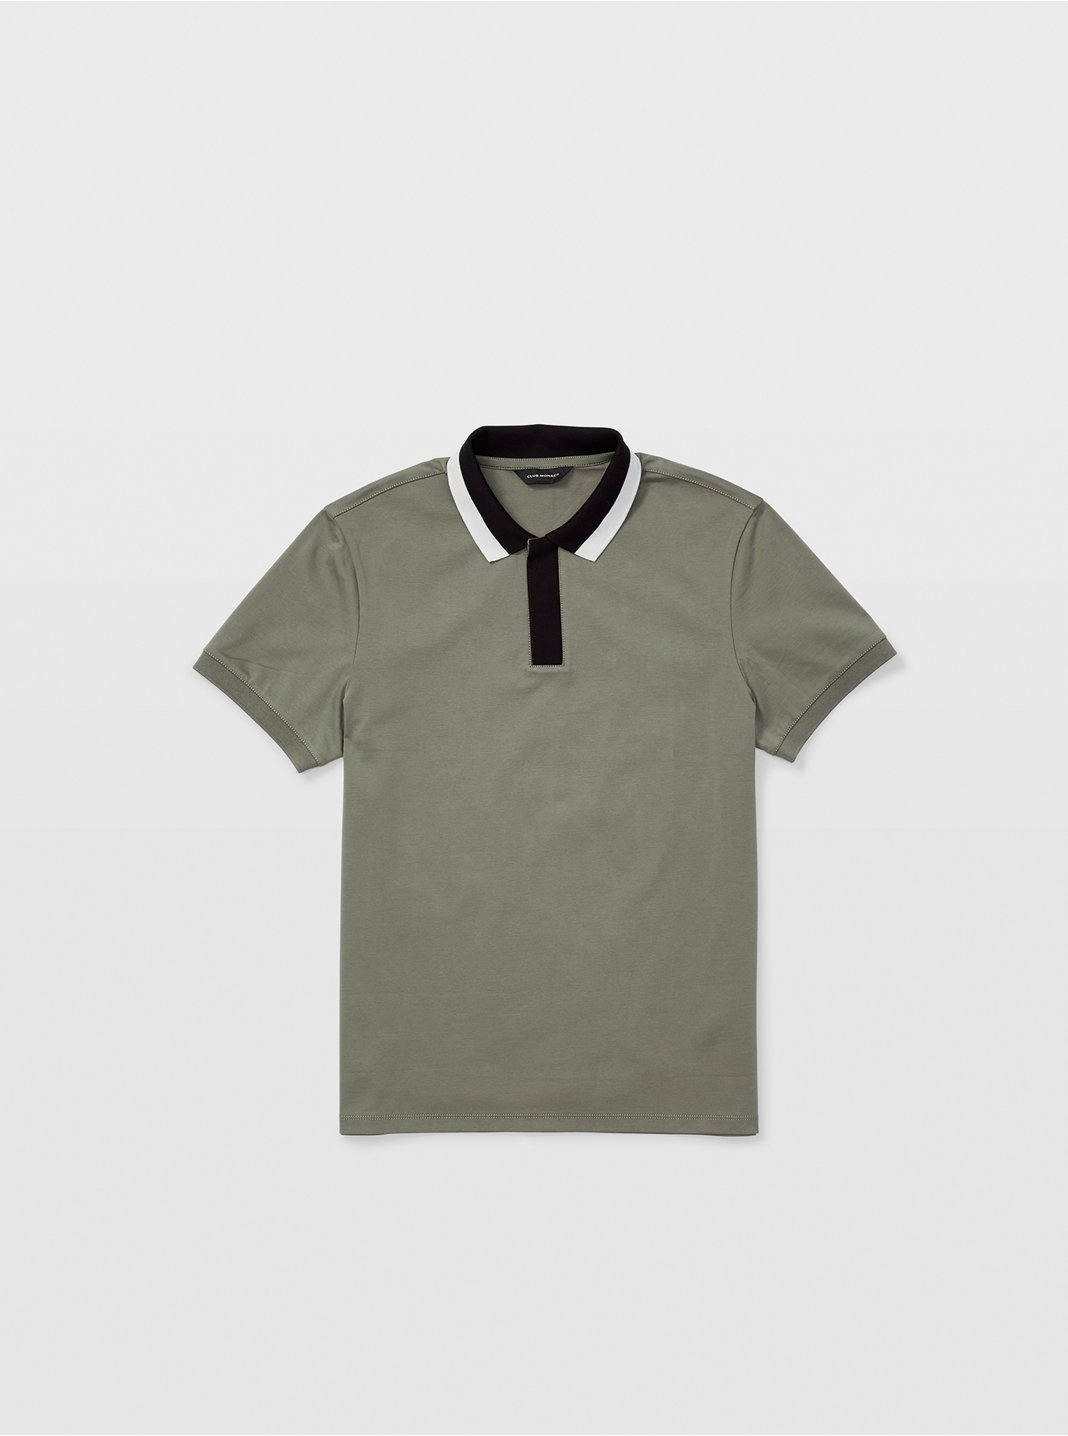 Blocked Collar Polo